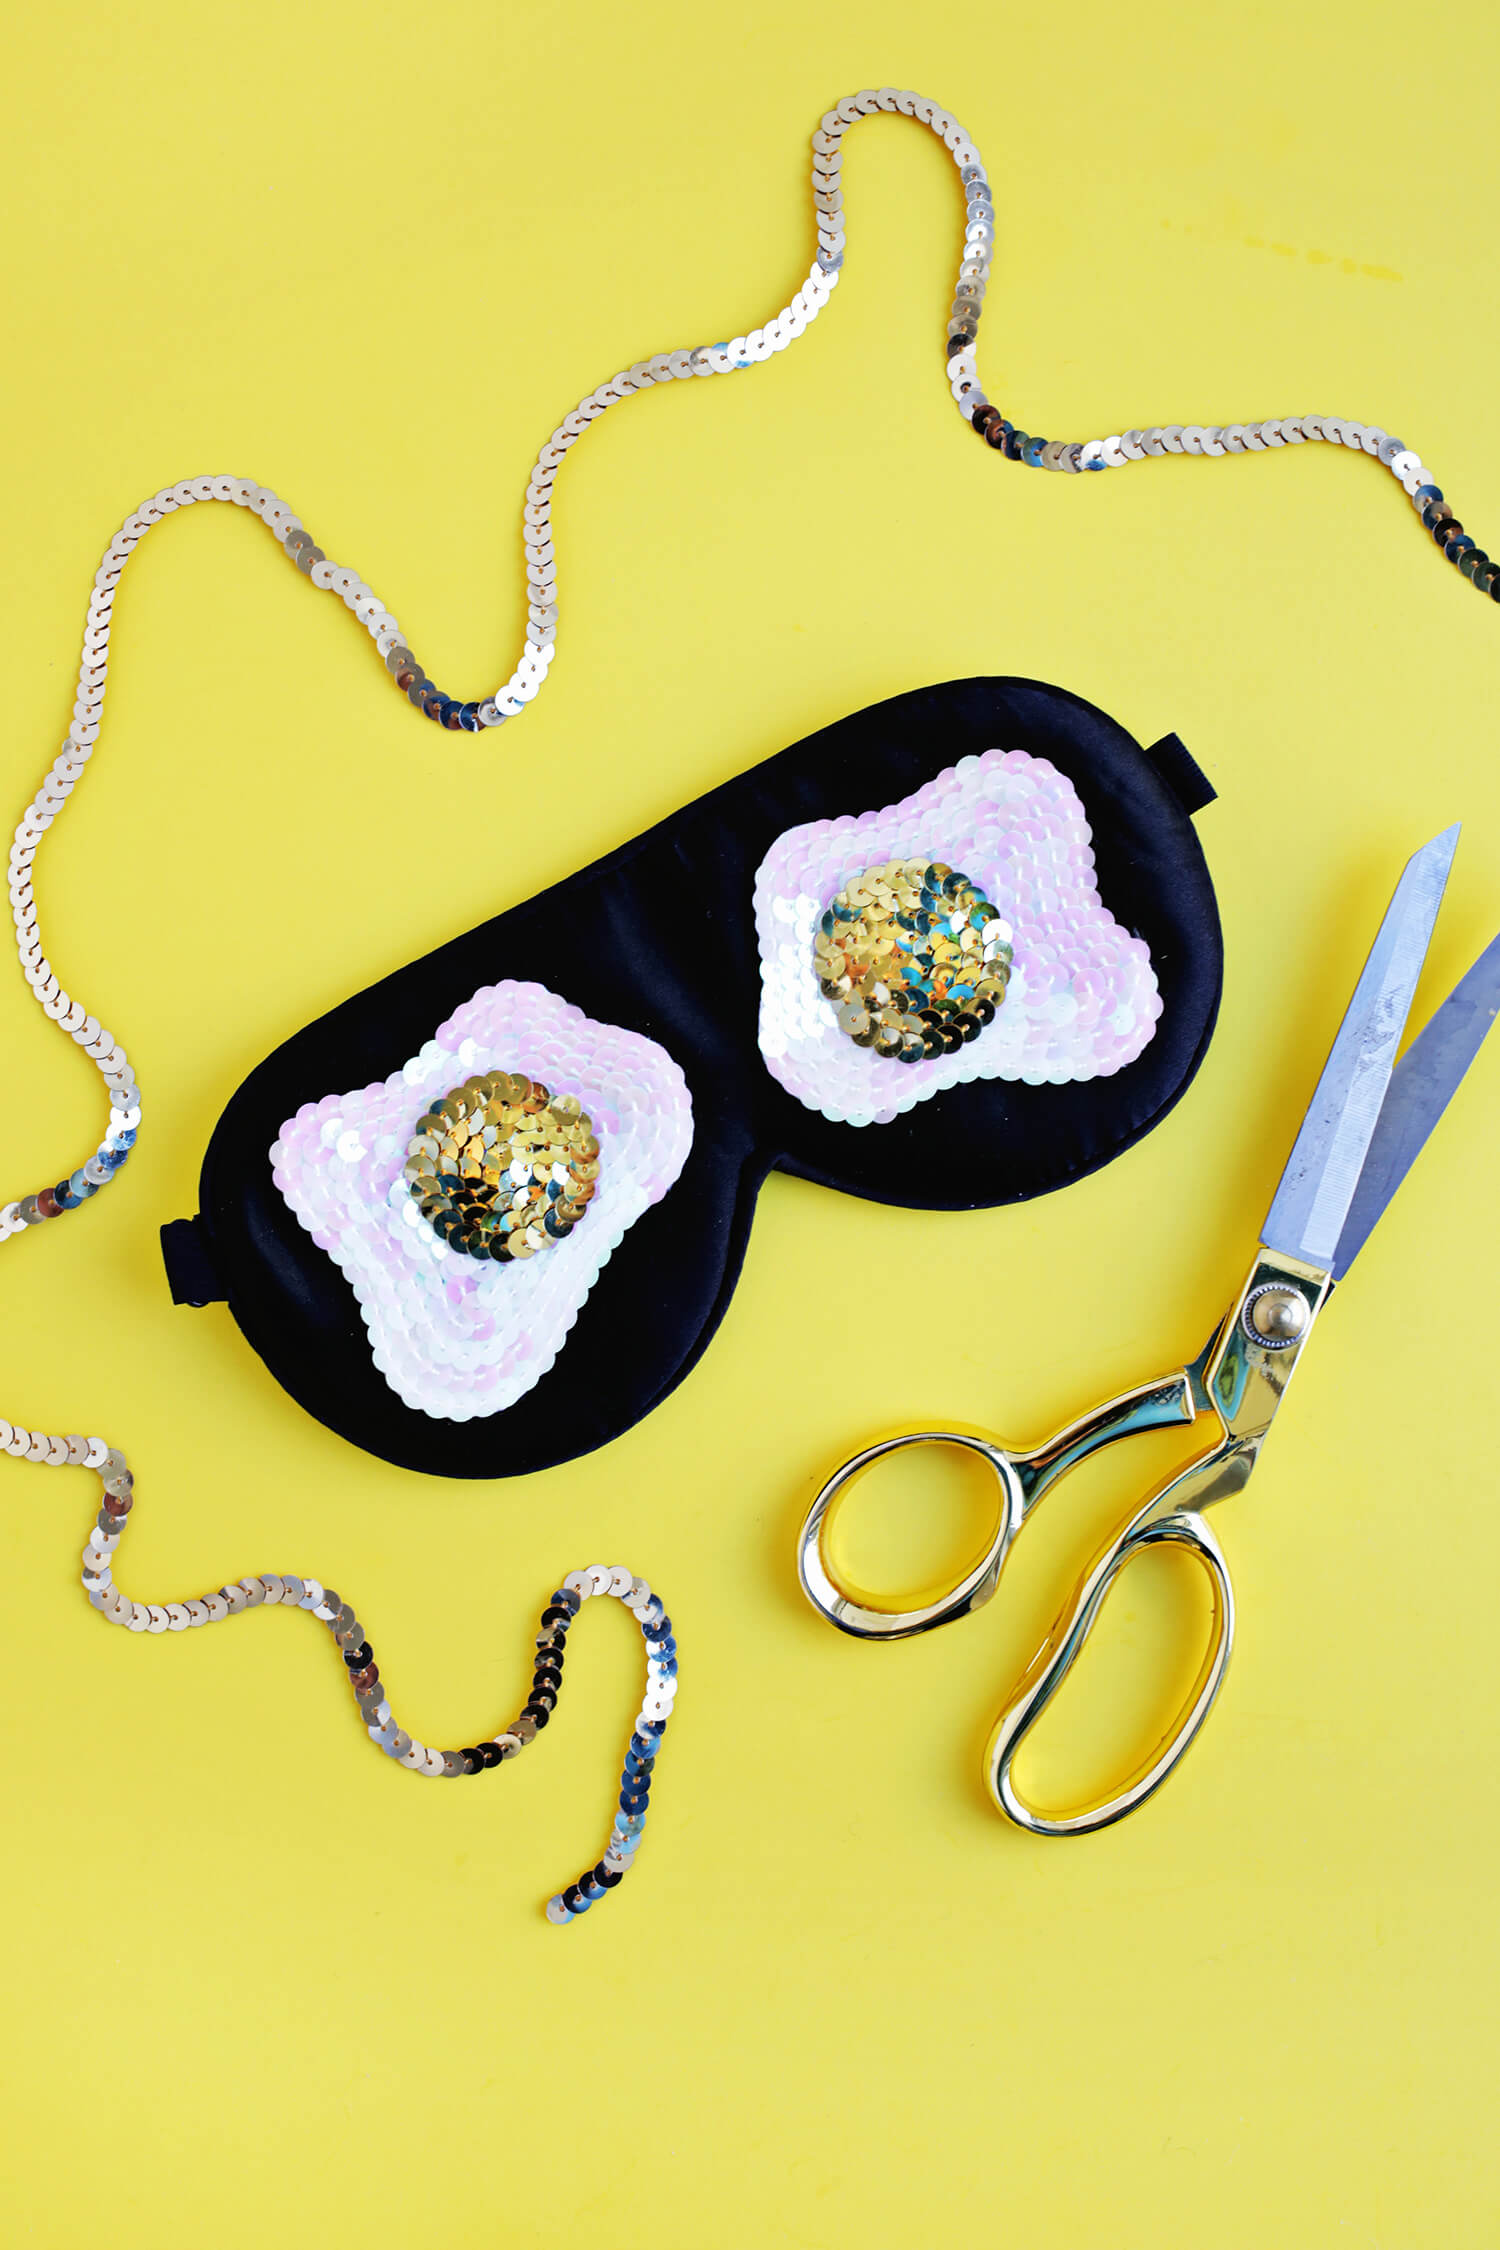 Sequin Fried Egg Sleep Mask DIY (click through for tutorial)